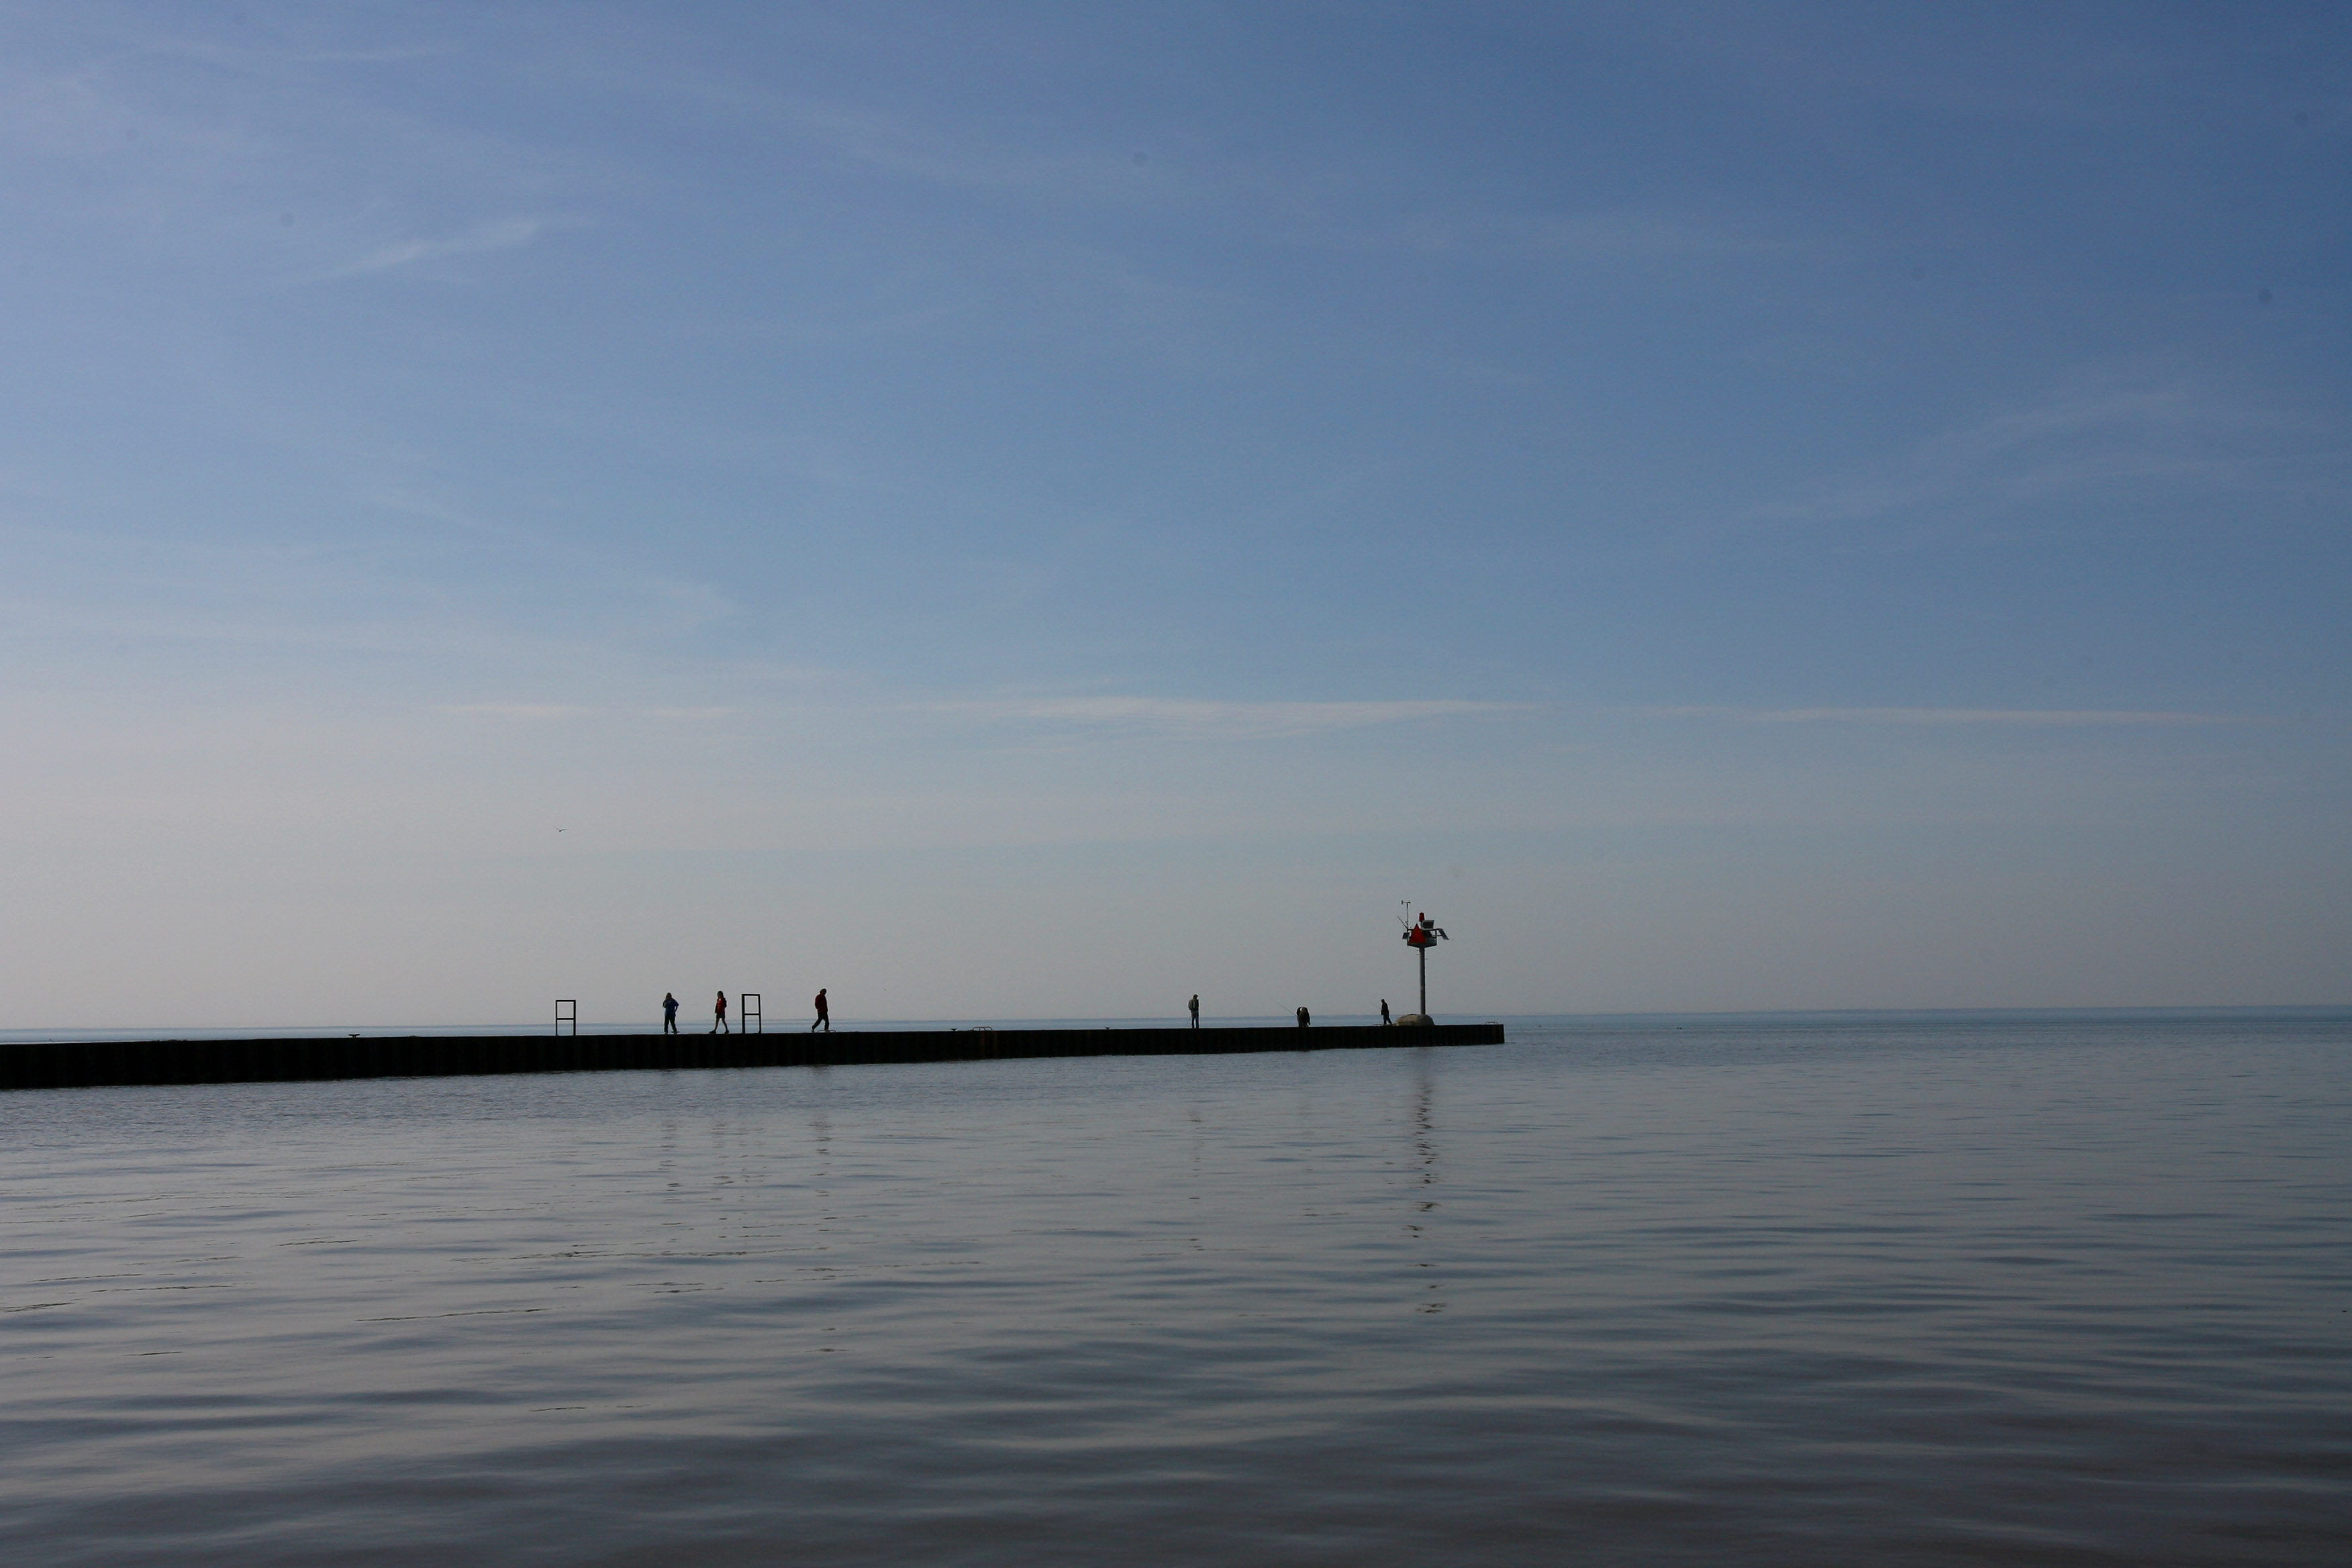 Residents voice concern over poor quality of Great Lakes